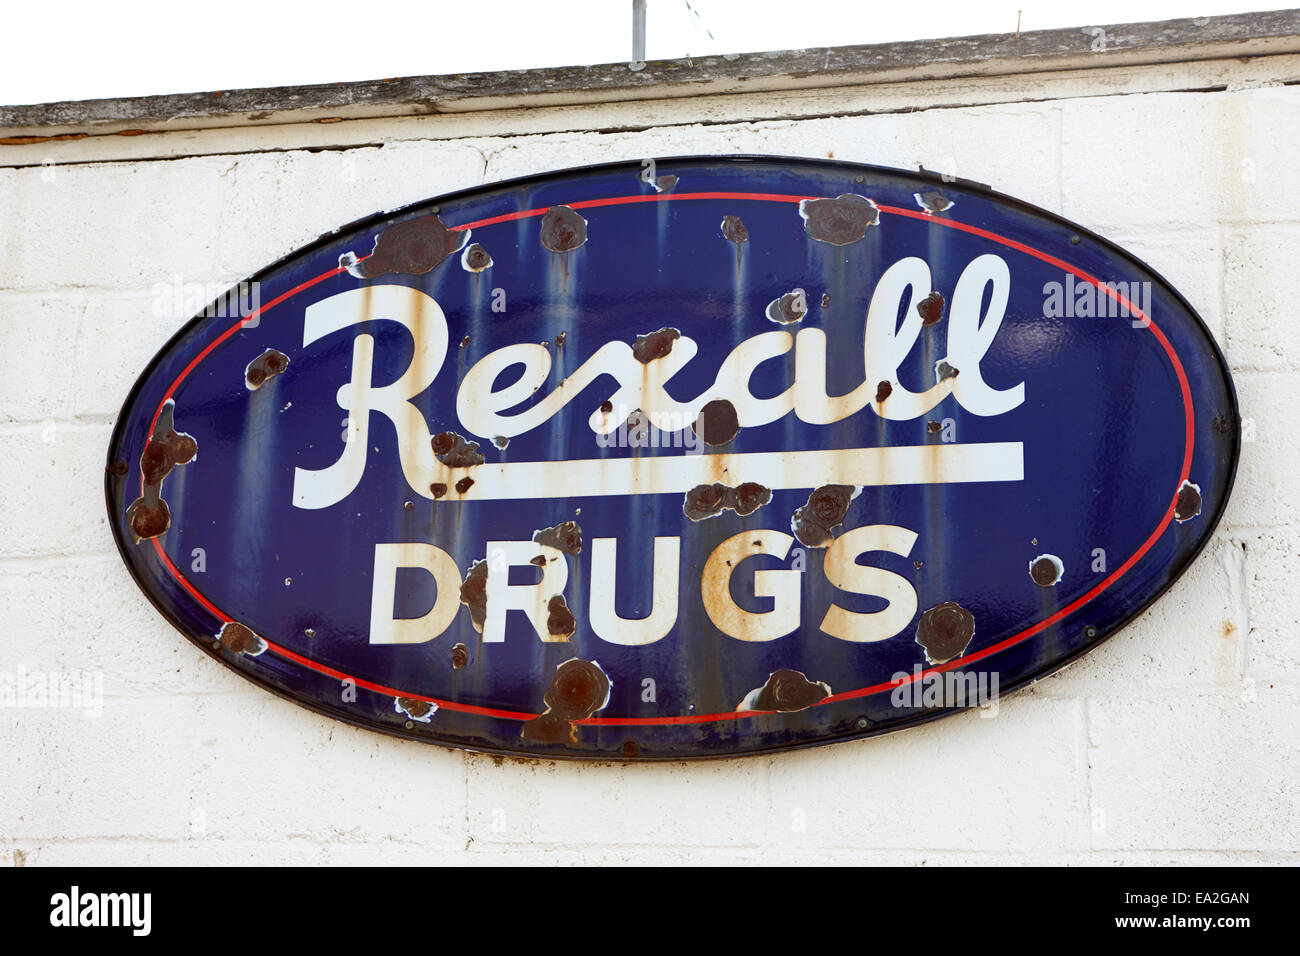 old metal rusting rexall drugs store sign Saskatchewan Canada - Stock Image